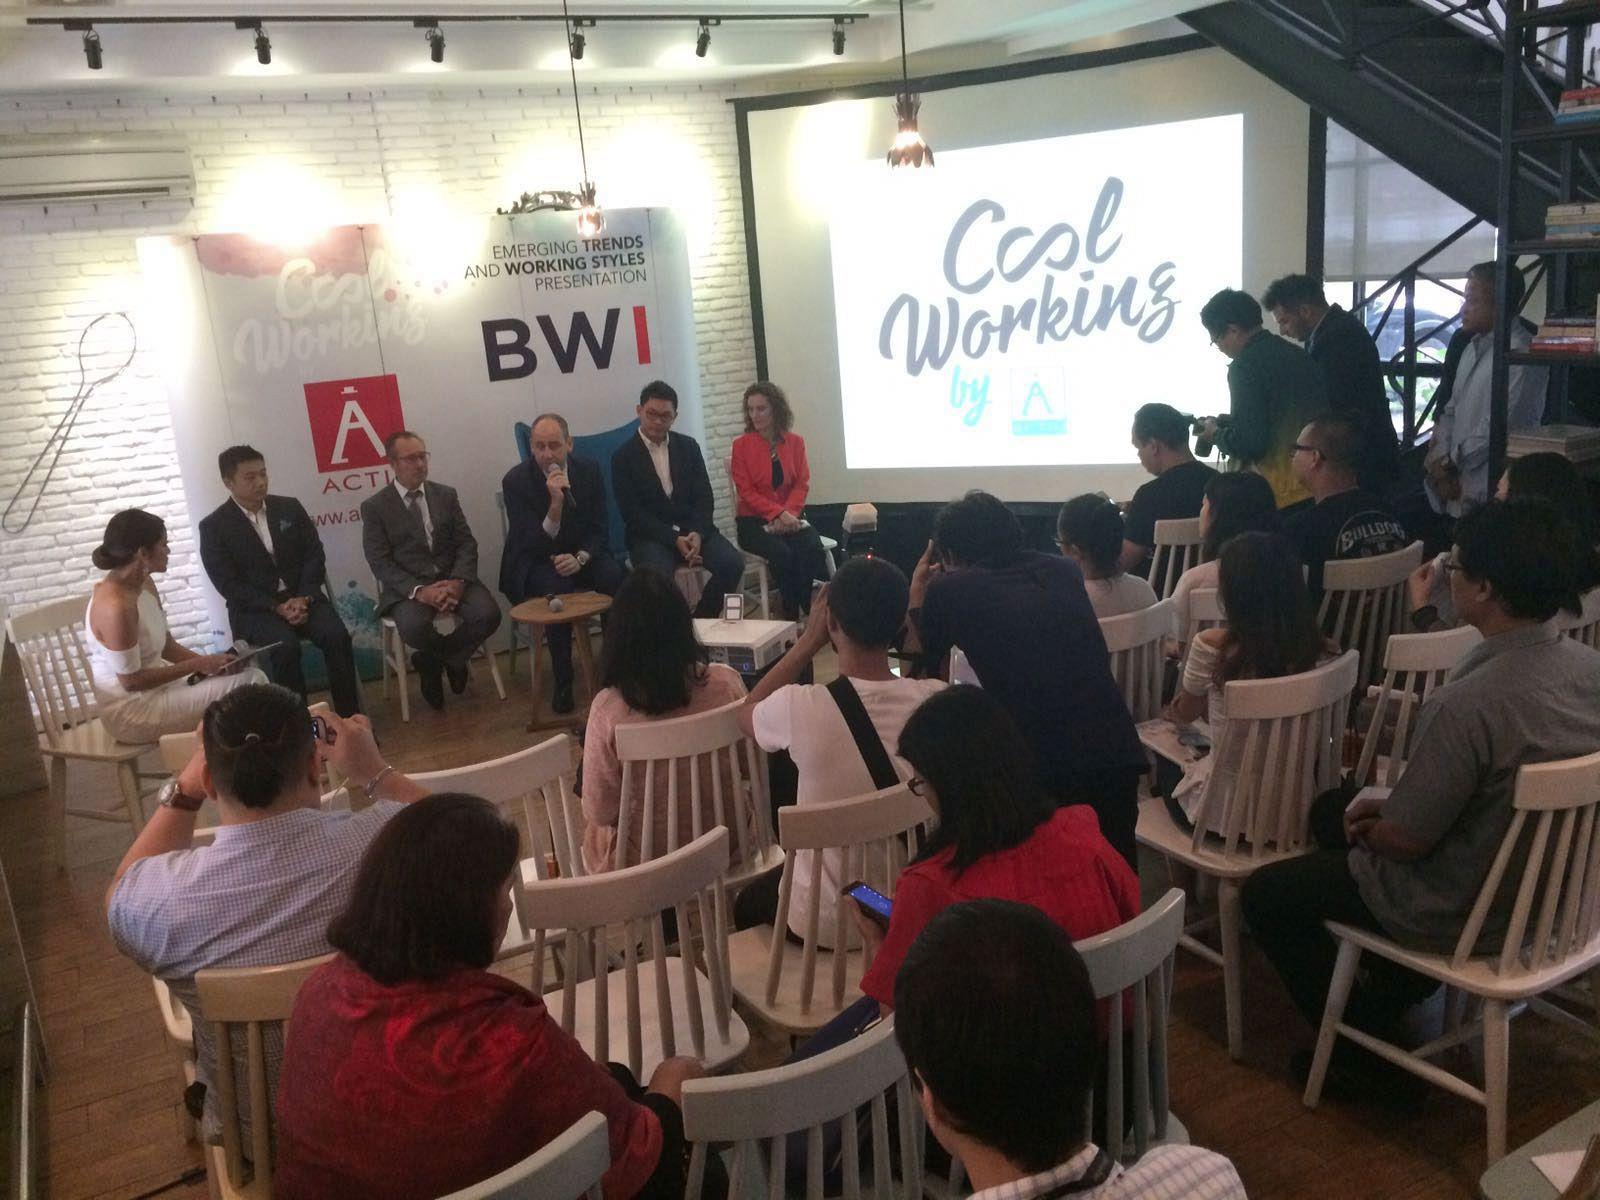 In a multitudinous event, BWI introduces the brand Actiu to the Indonesian market 2